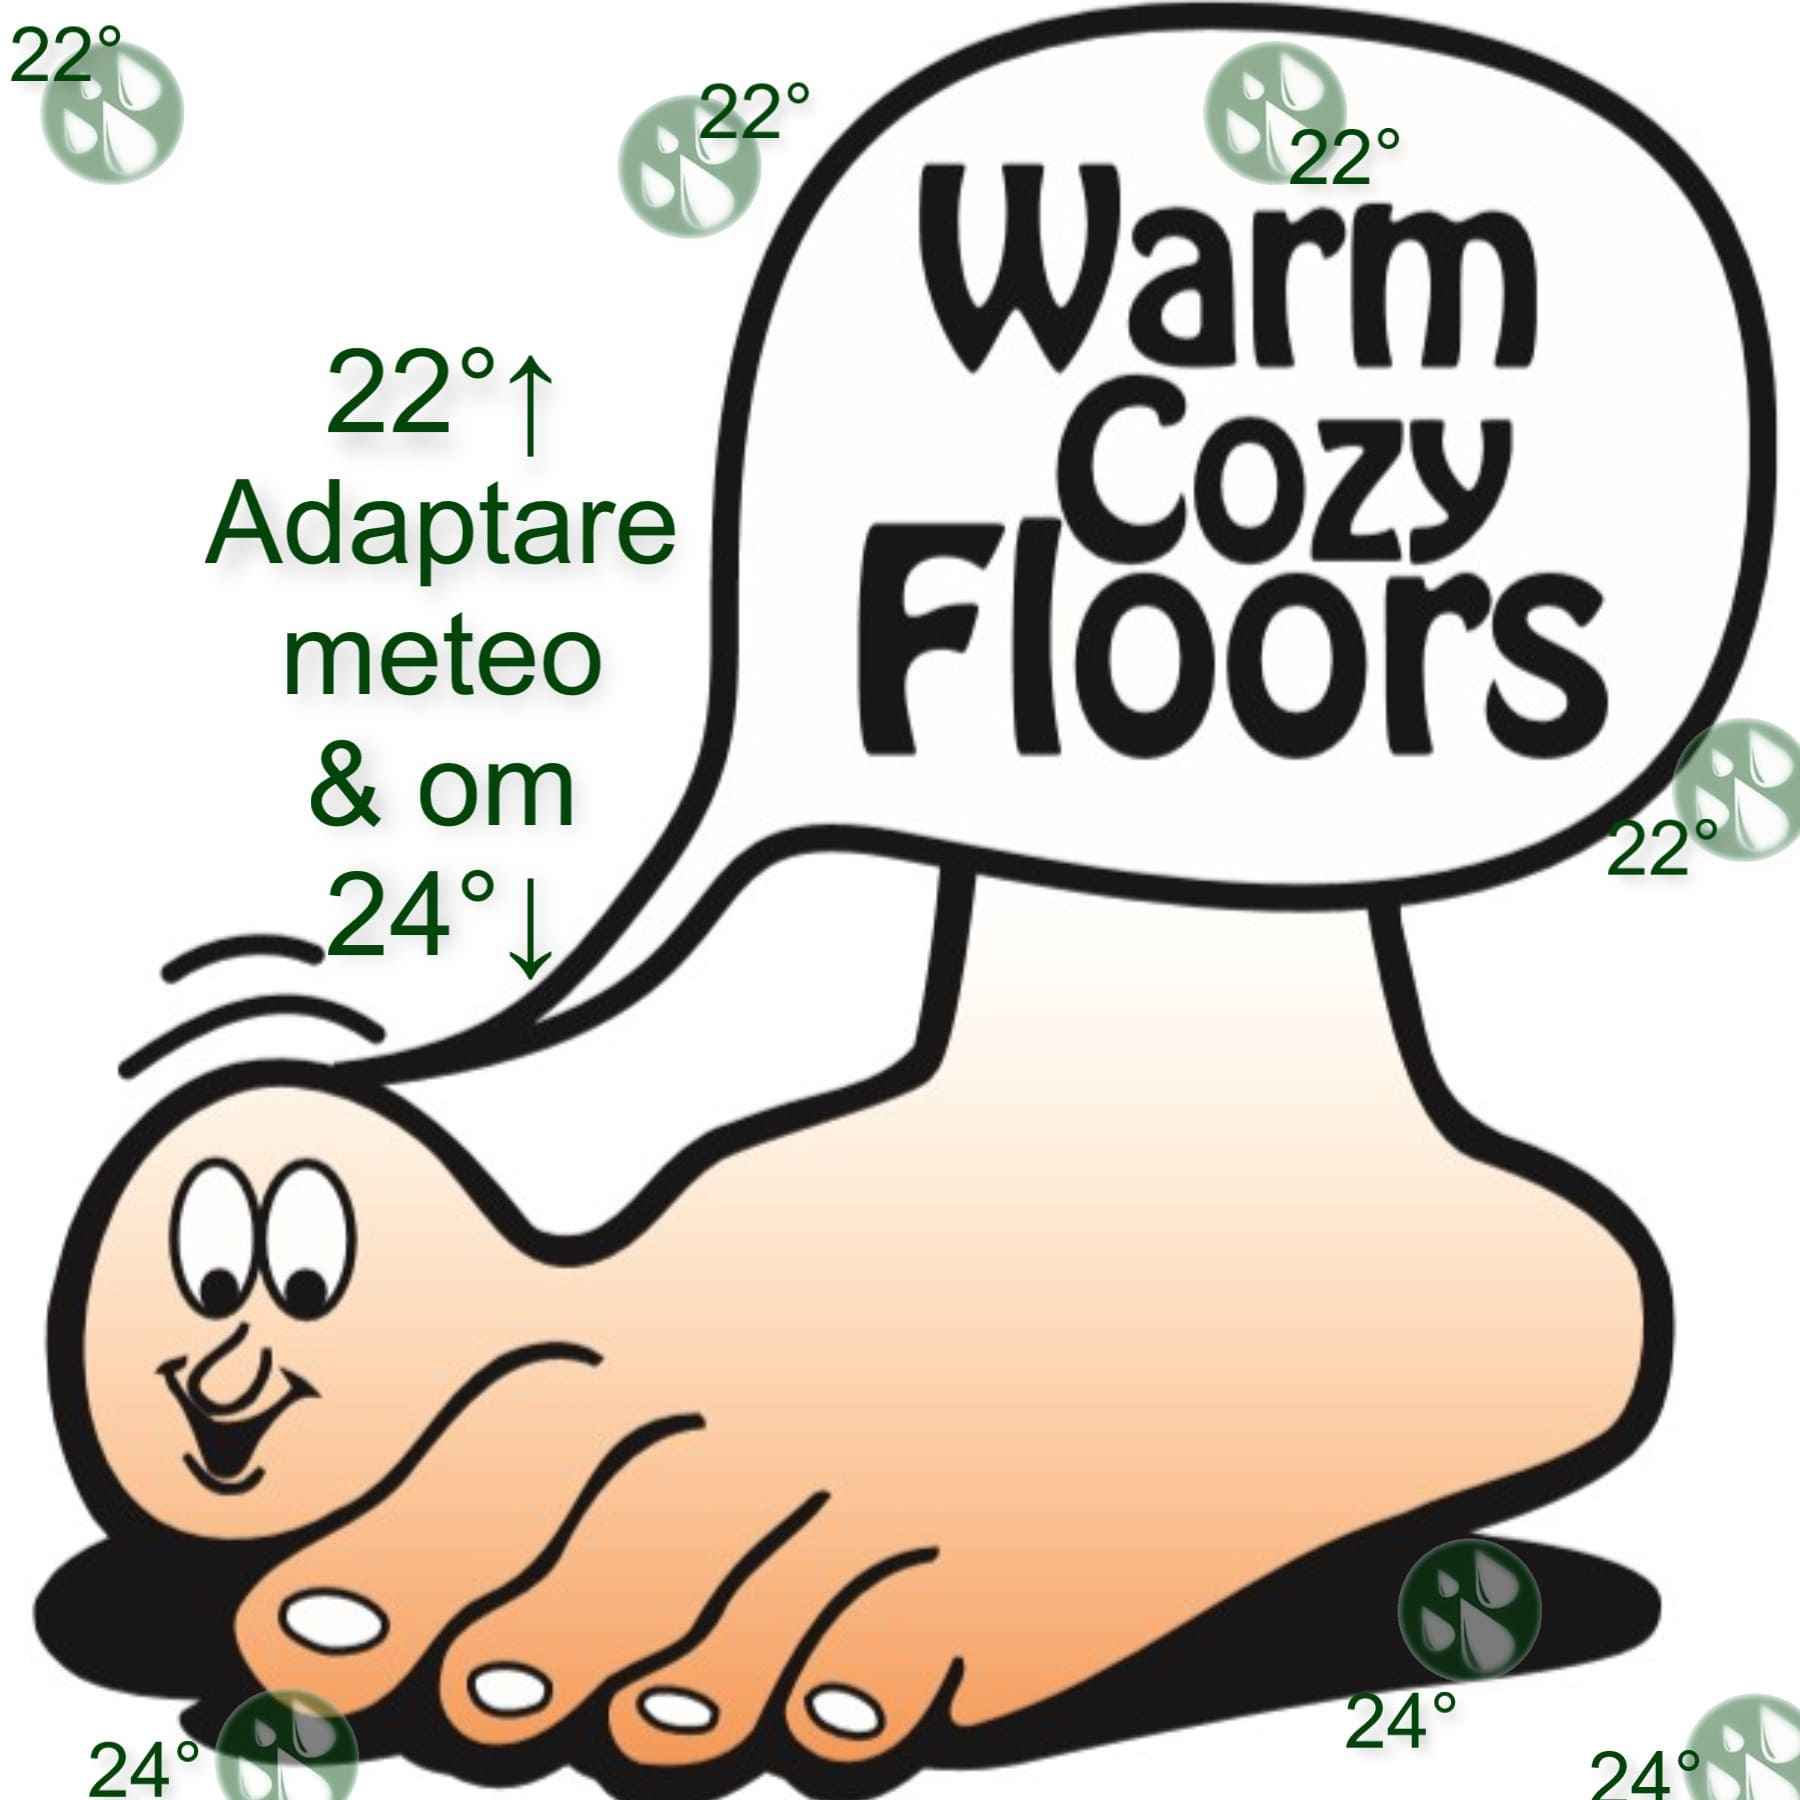 Adaptare meteo & om cozy floor